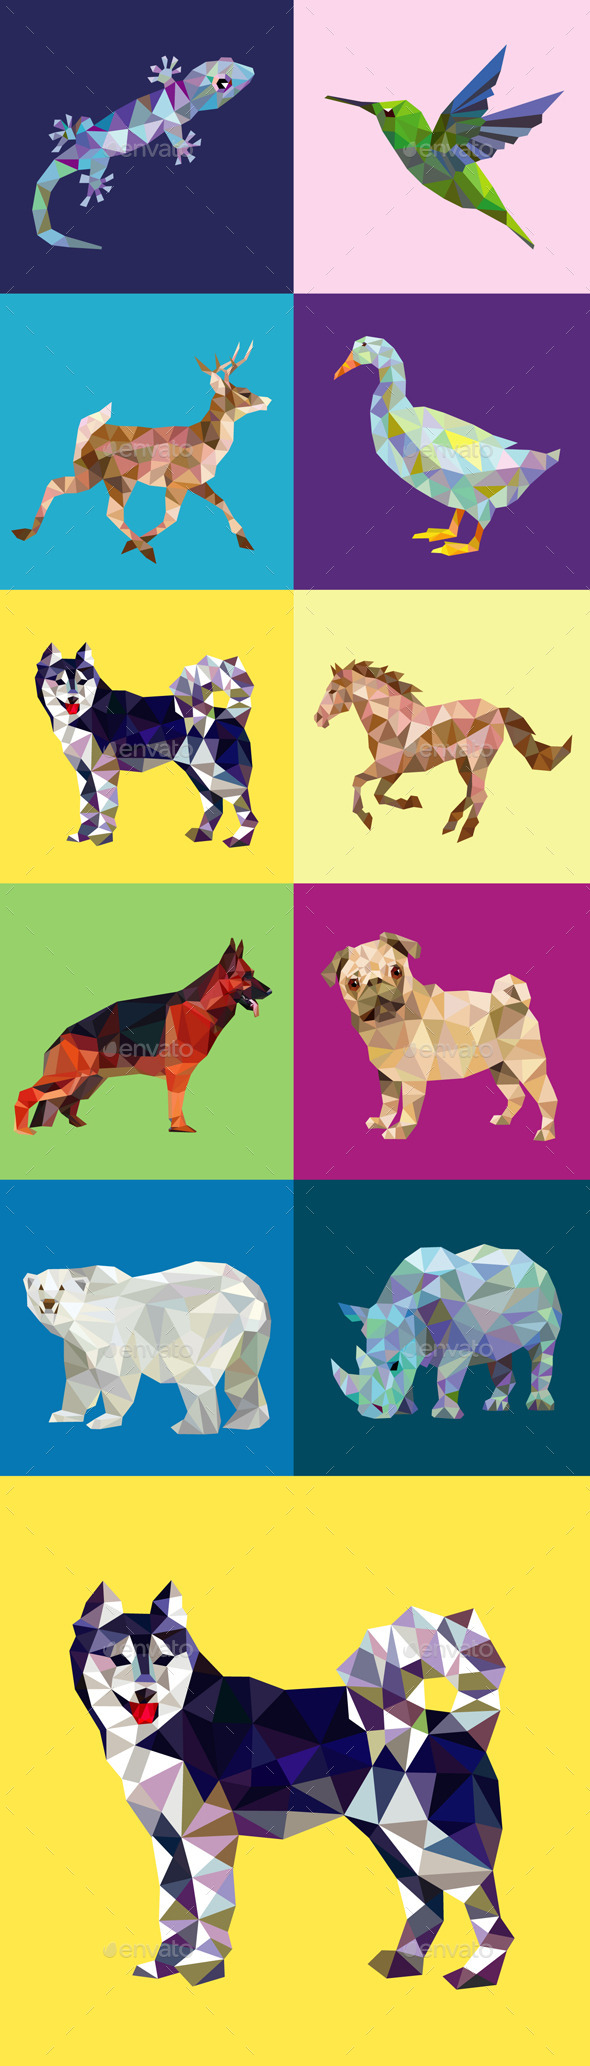 10 Low Poly Animal Series 2 - Animals Characters